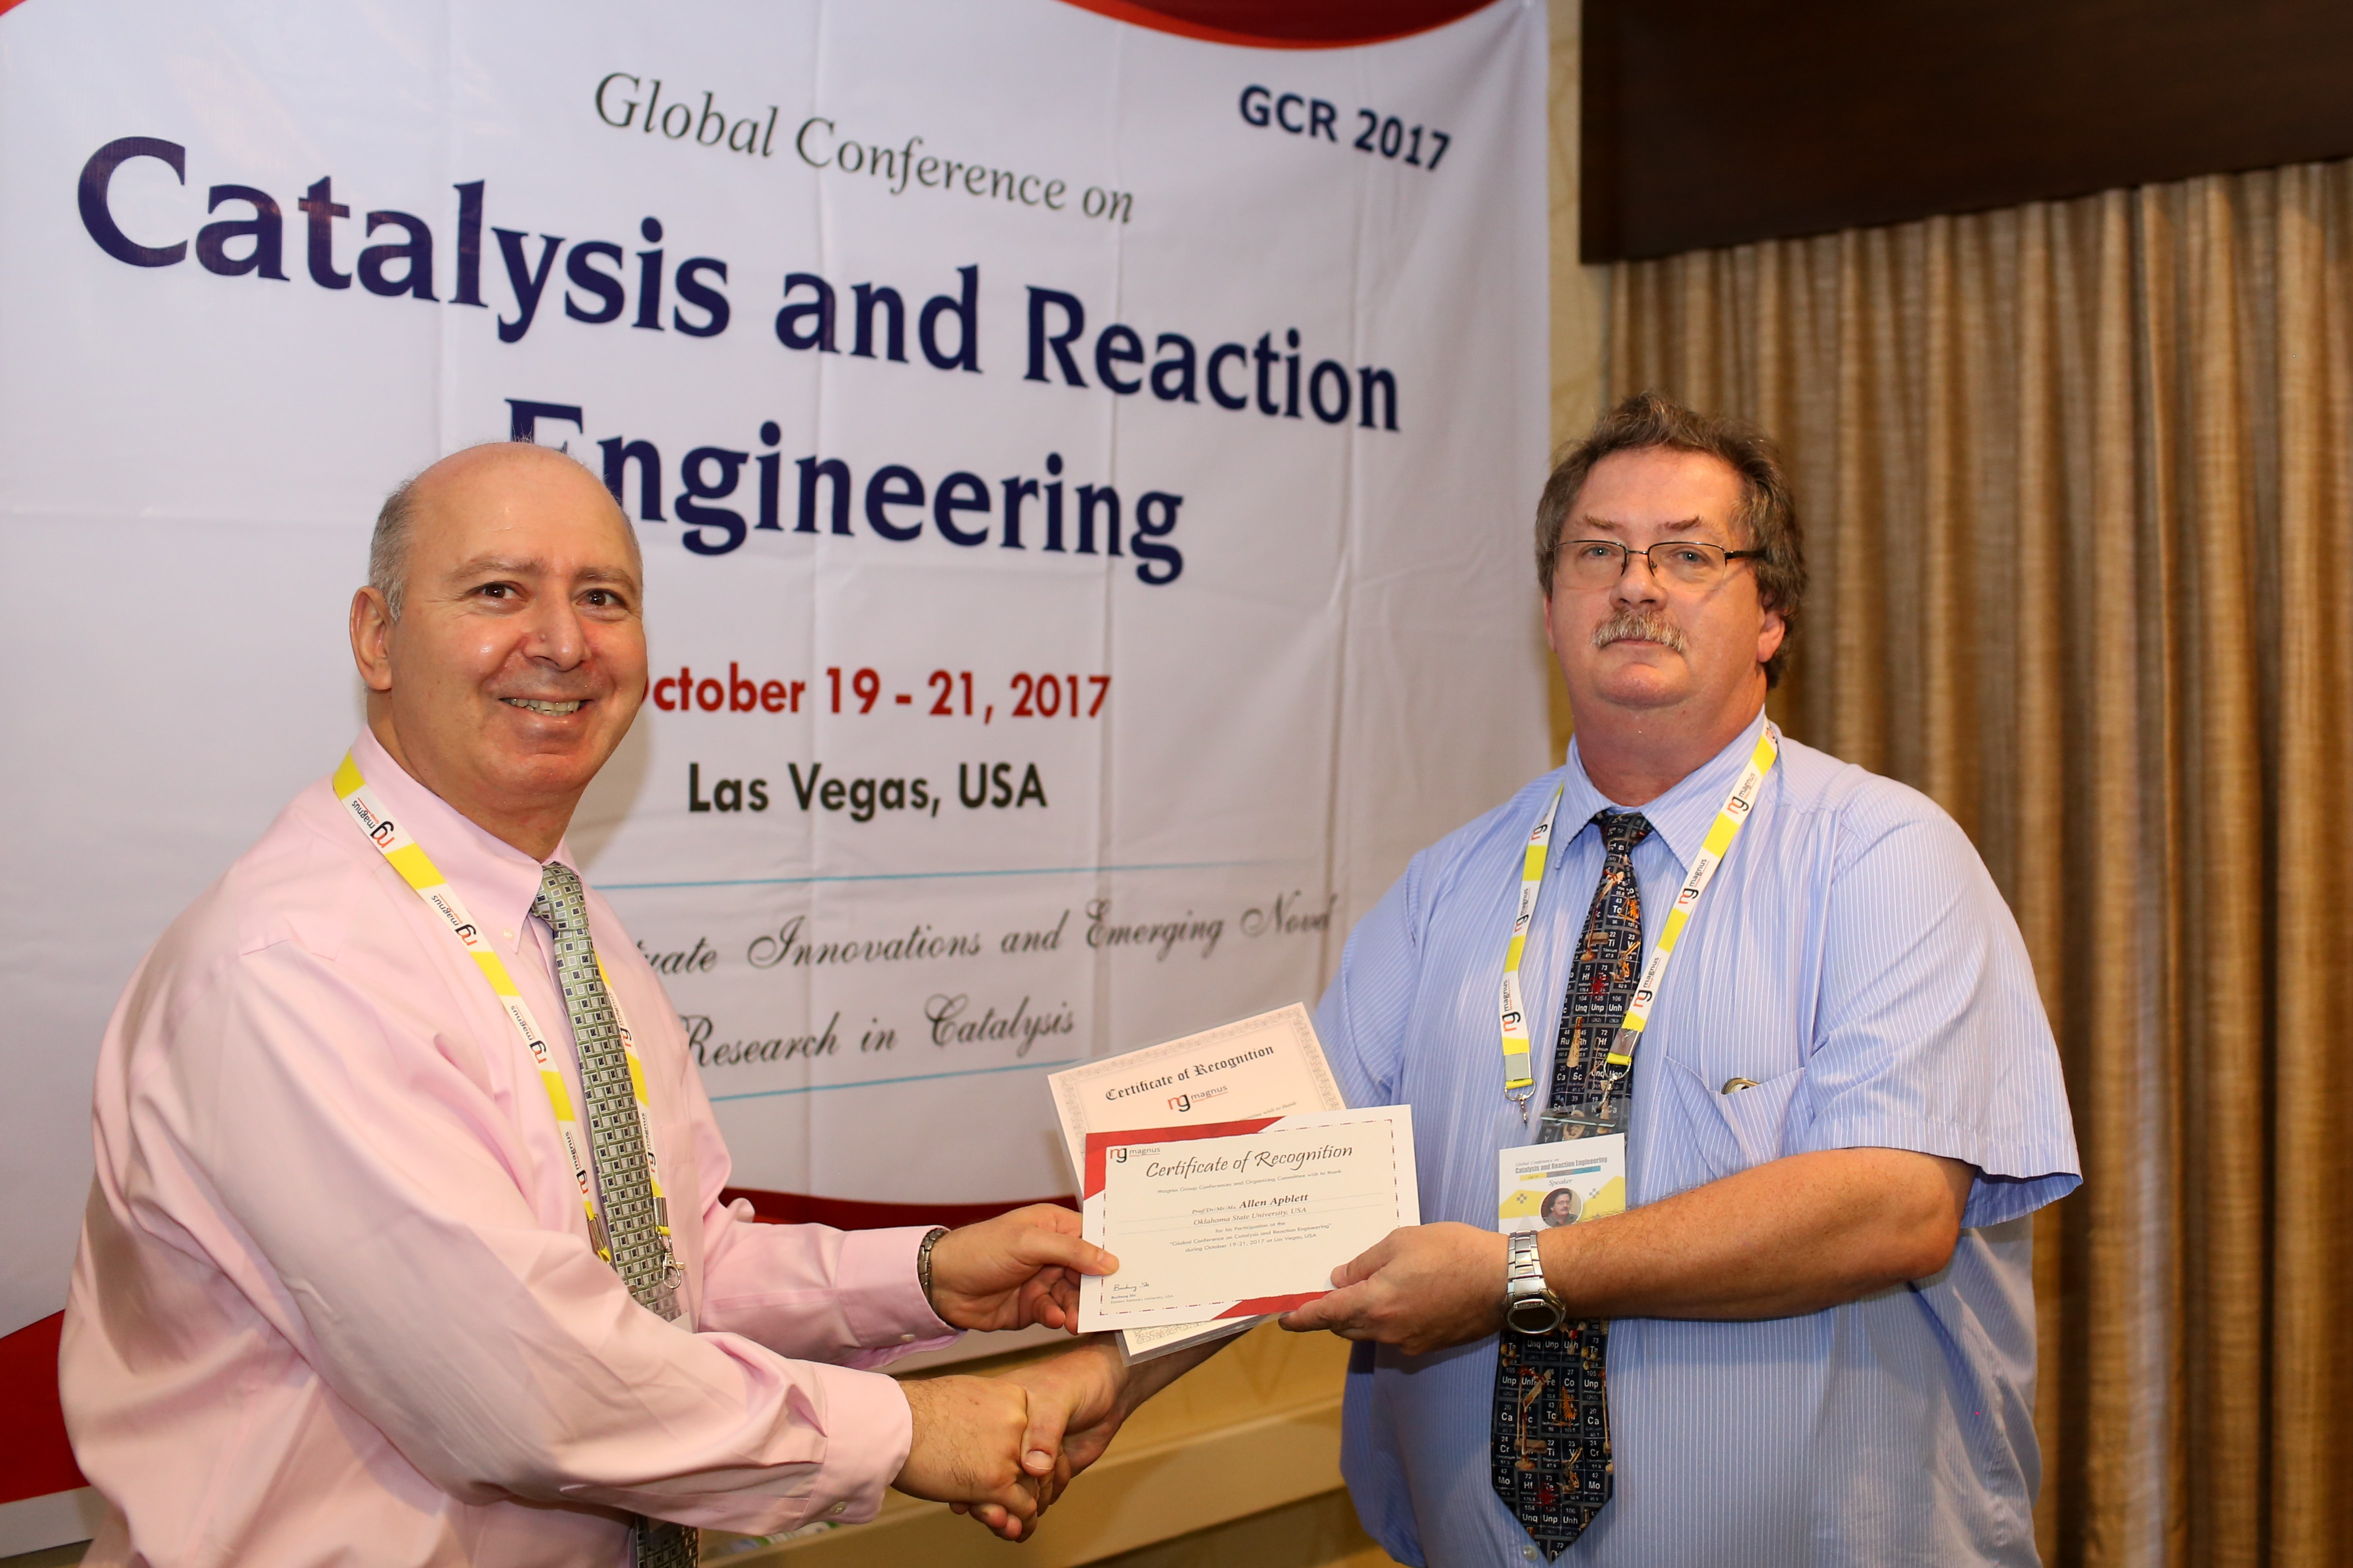 Catalysis Conference 2017, Las Vegas, USA